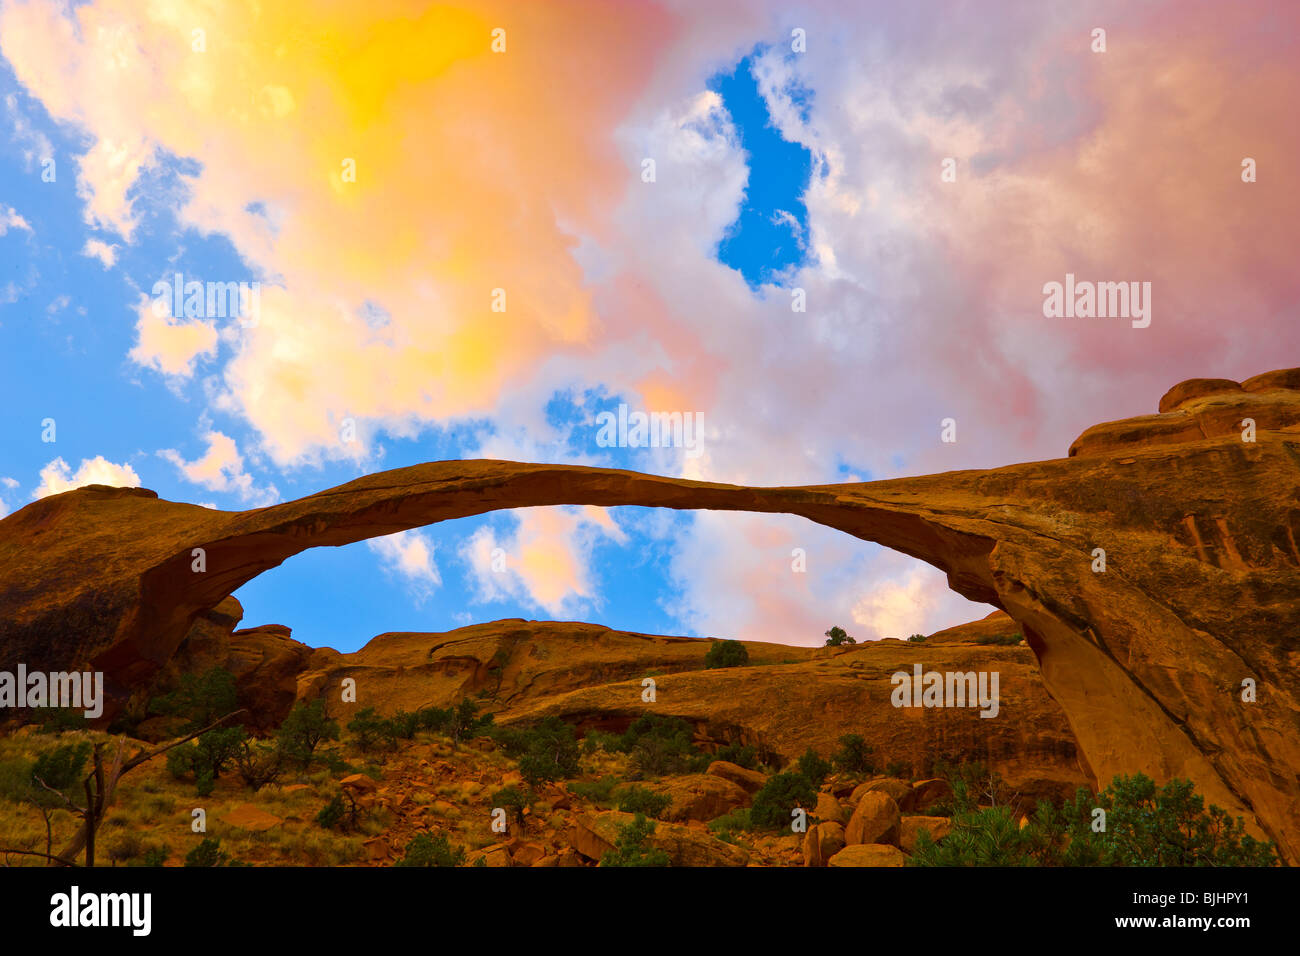 Landscape Arch, Arches National Park, Utah, l'un des plus longs travées naturelles, Devils Garden Photo Stock